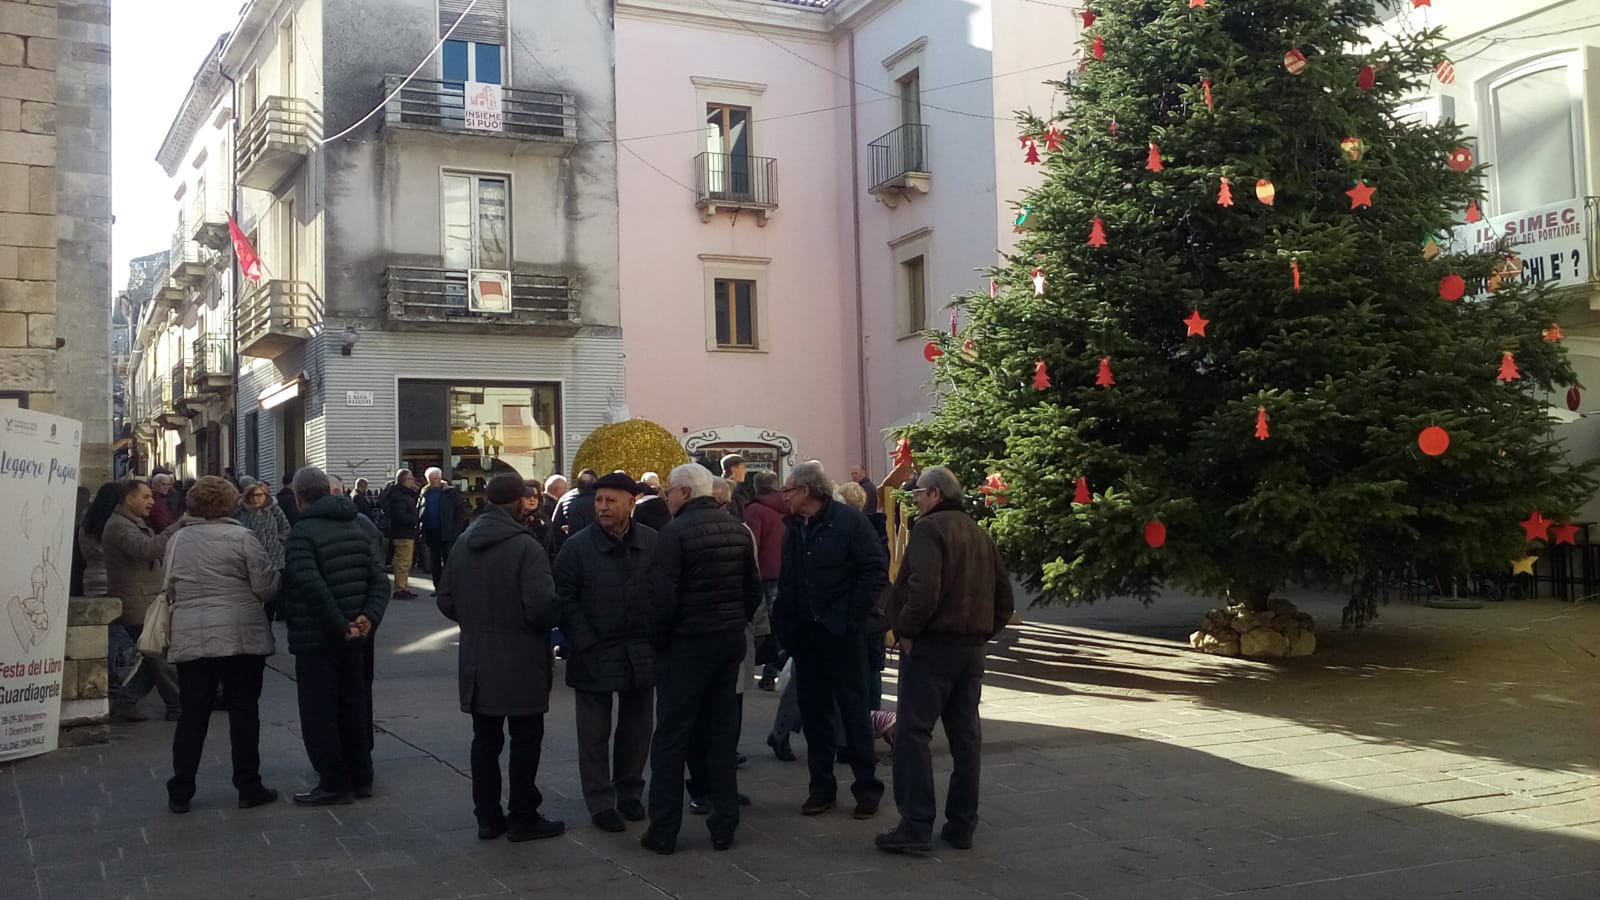 A group gathers on Sunday morning by the community Christmas tree in Guardiagrele's main piazza.